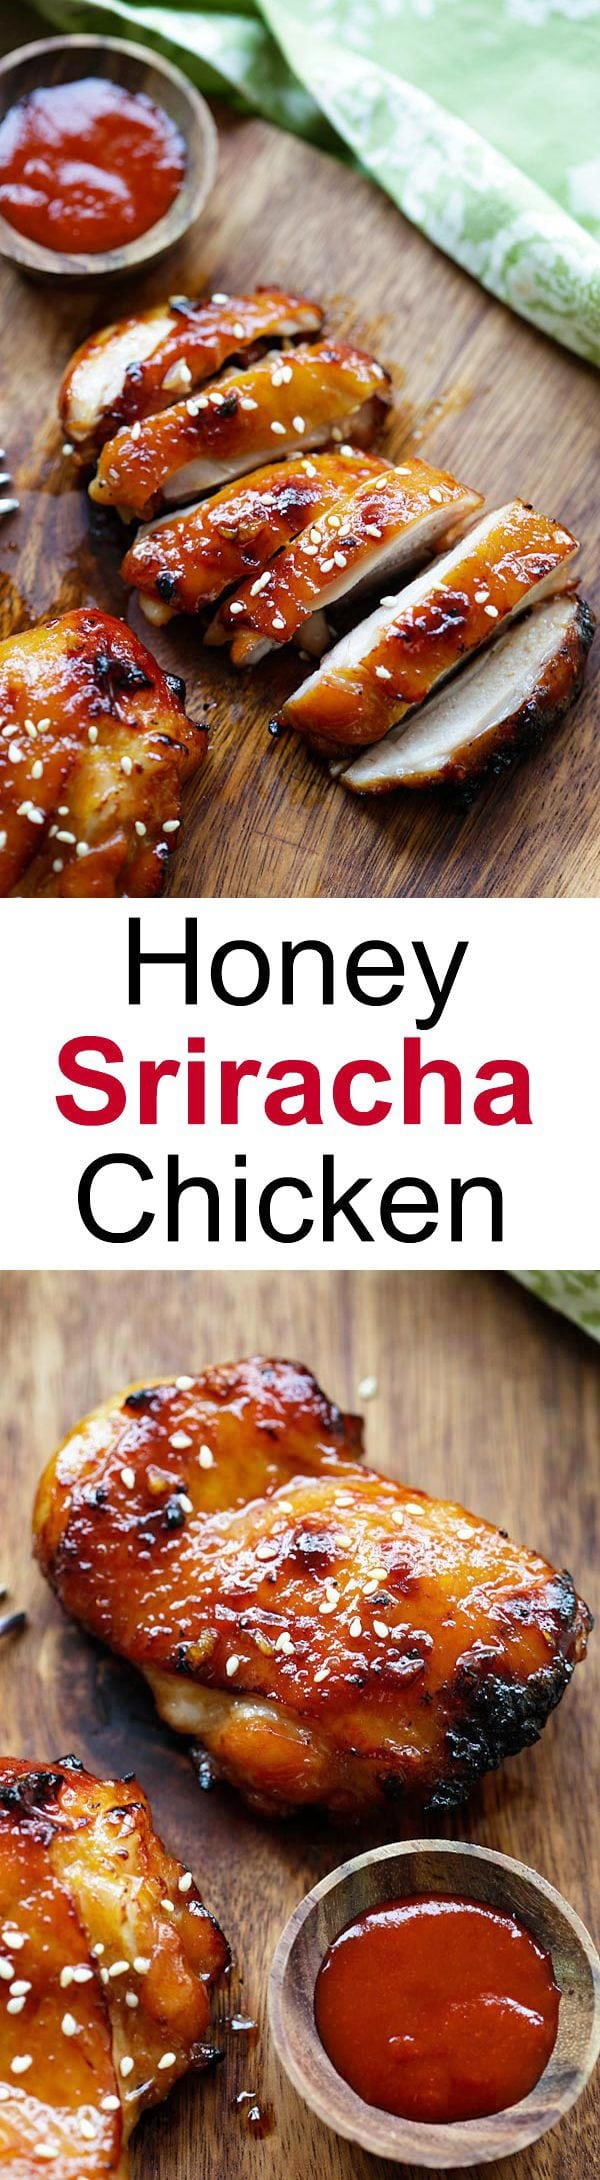 Honey Sriracha Chicken – crazy delicious chicken with honey sriracha marinade. Make it on a skillet, bake or grill for dinner tonight | rasamalaysia.com